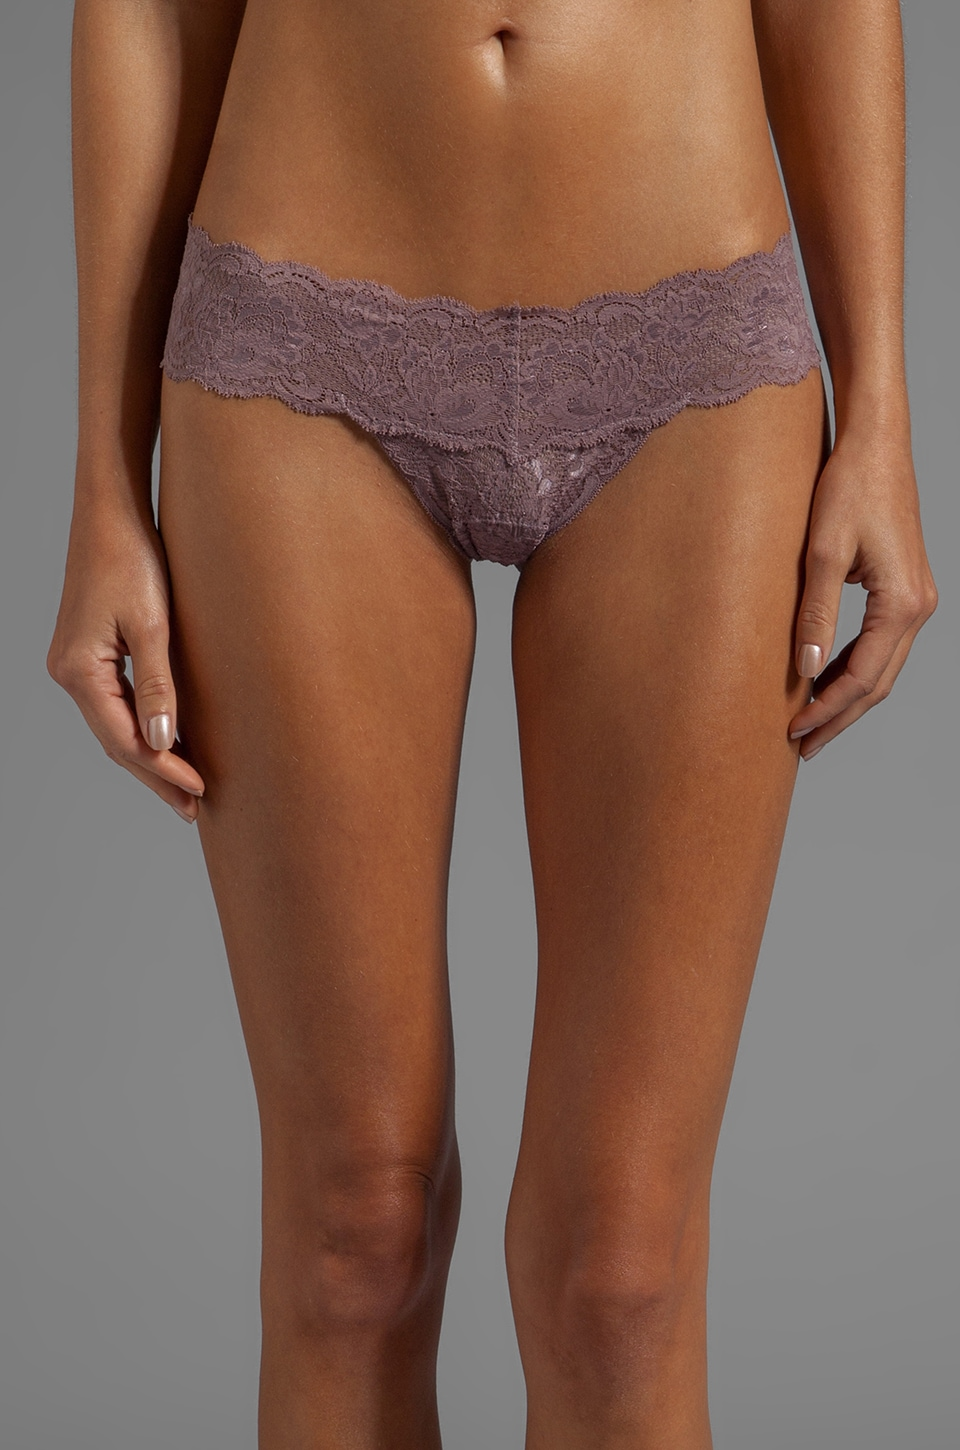 Cosabella Never Say Never LR Hot Pant in Dusty Mauve